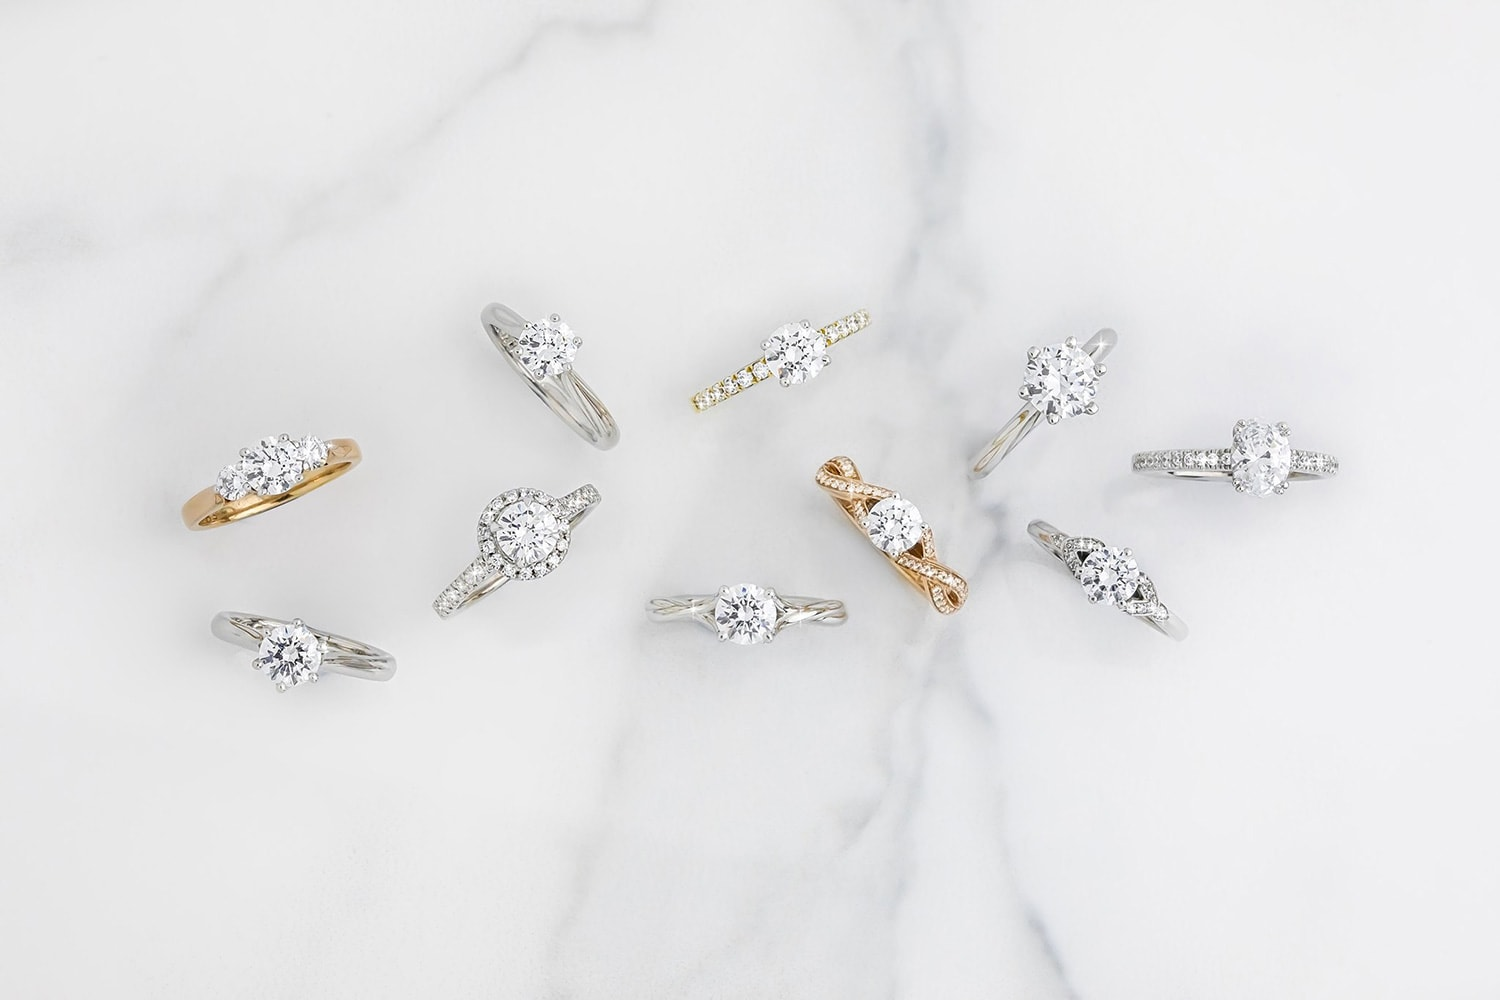 Bespoke Jewellers Designing Timeless Engagement Rings